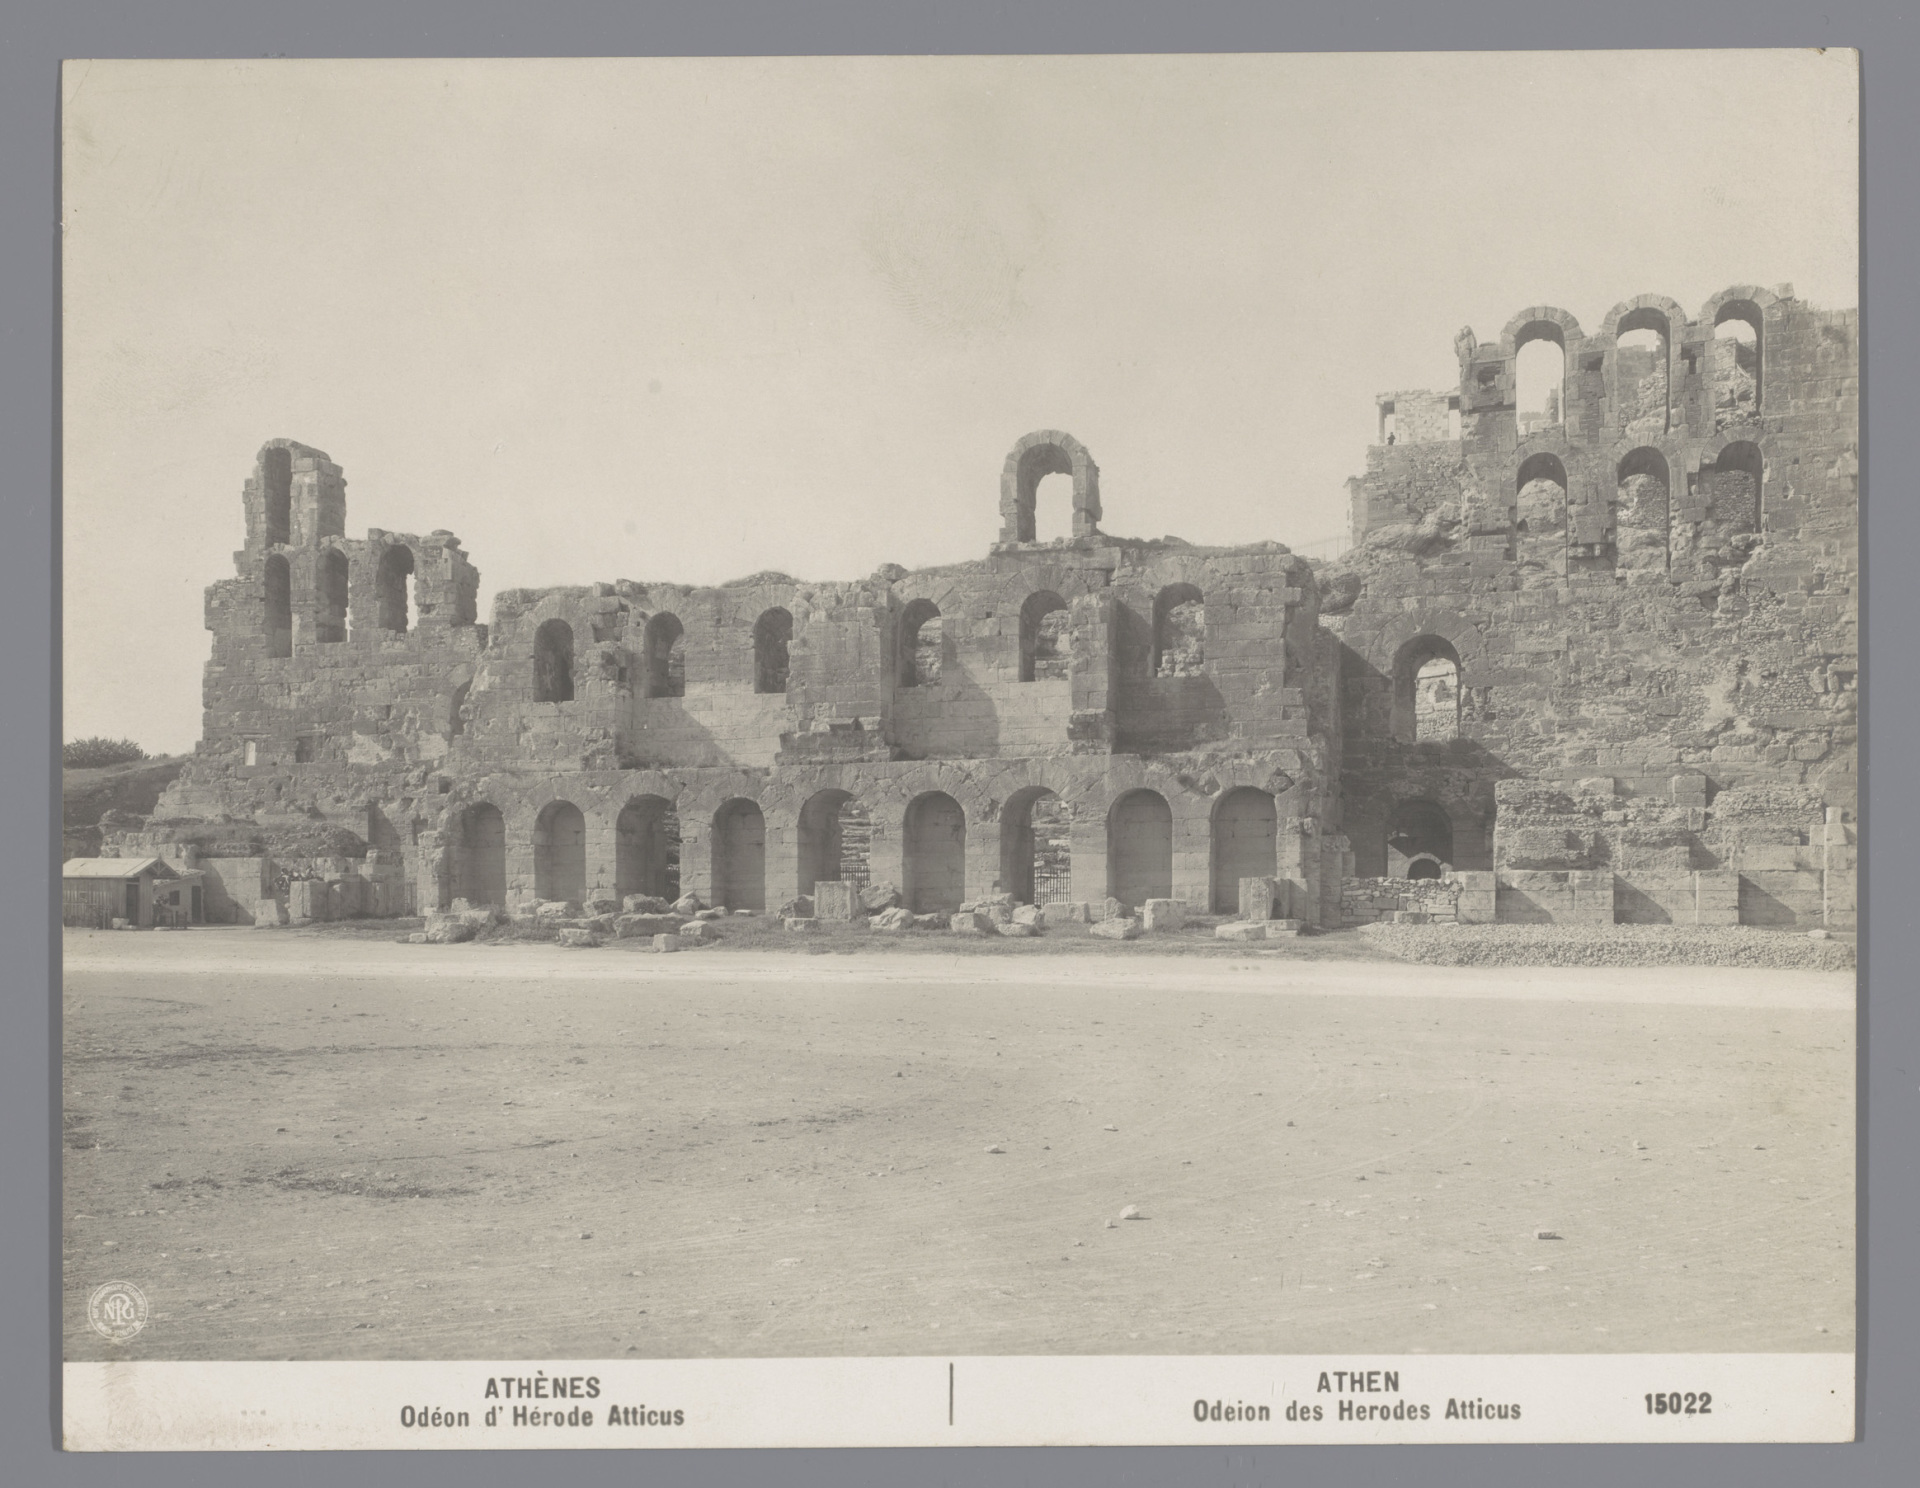 Construction of the Odeon of Herodes Atticus